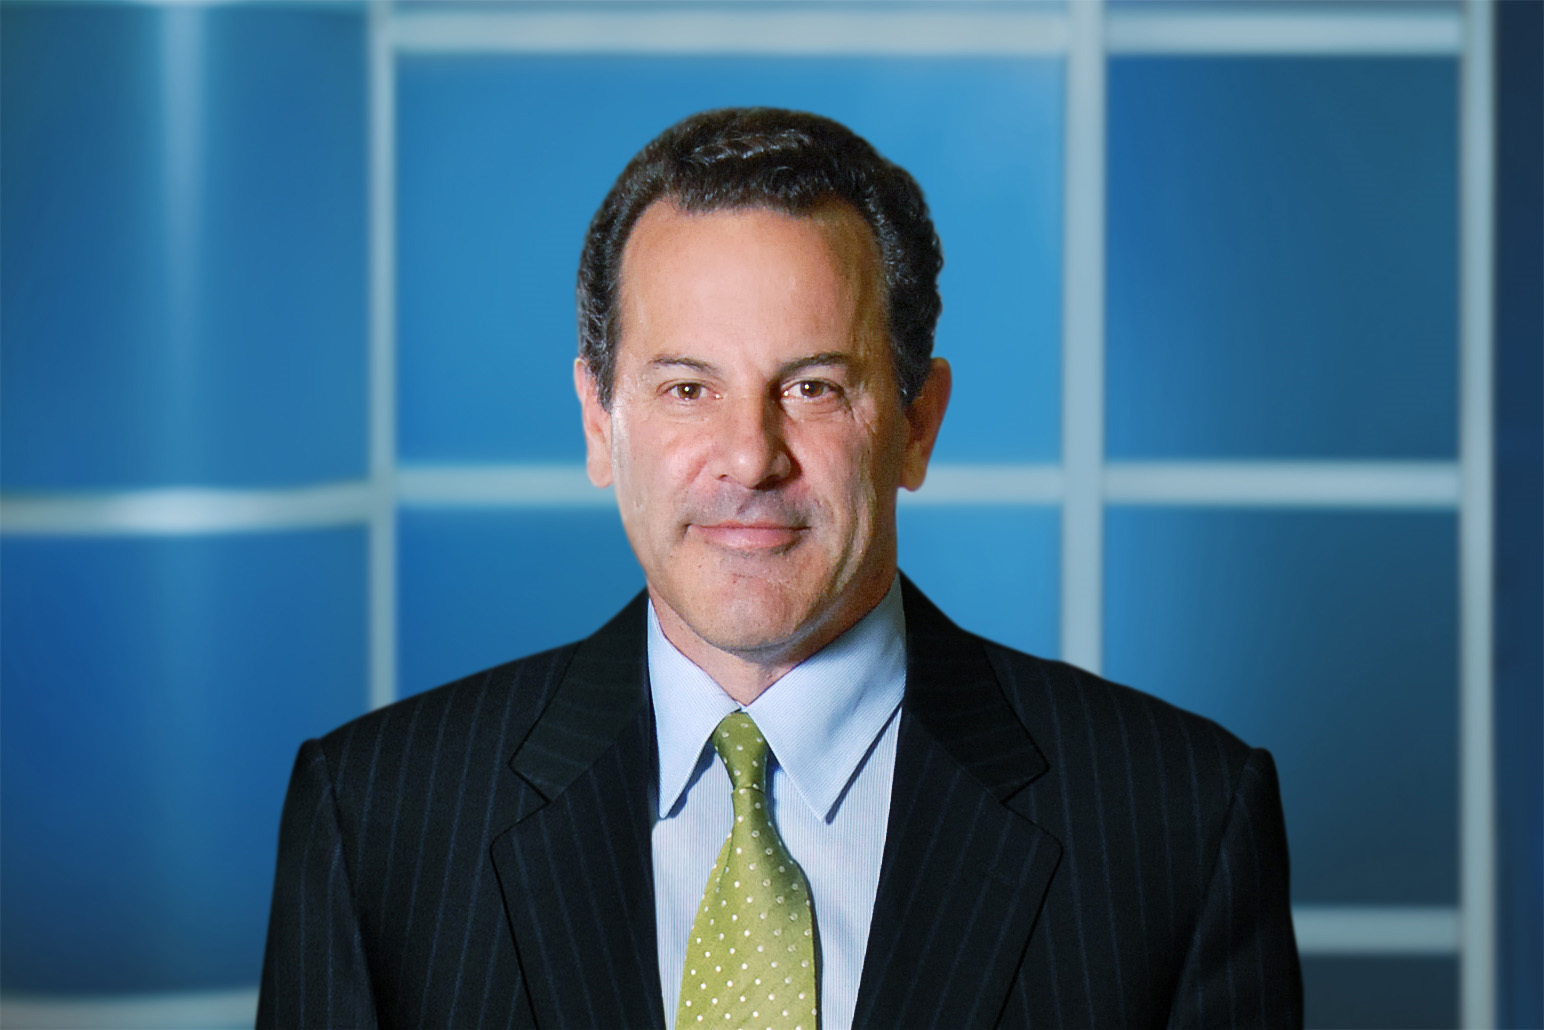 Arconic Announces Appointment of David P. Hess, former Executive Vice President and Chief Customer Officer, Aerospace, of United Technologies Corporation to Board of Directors. (Photo: Business Wire)